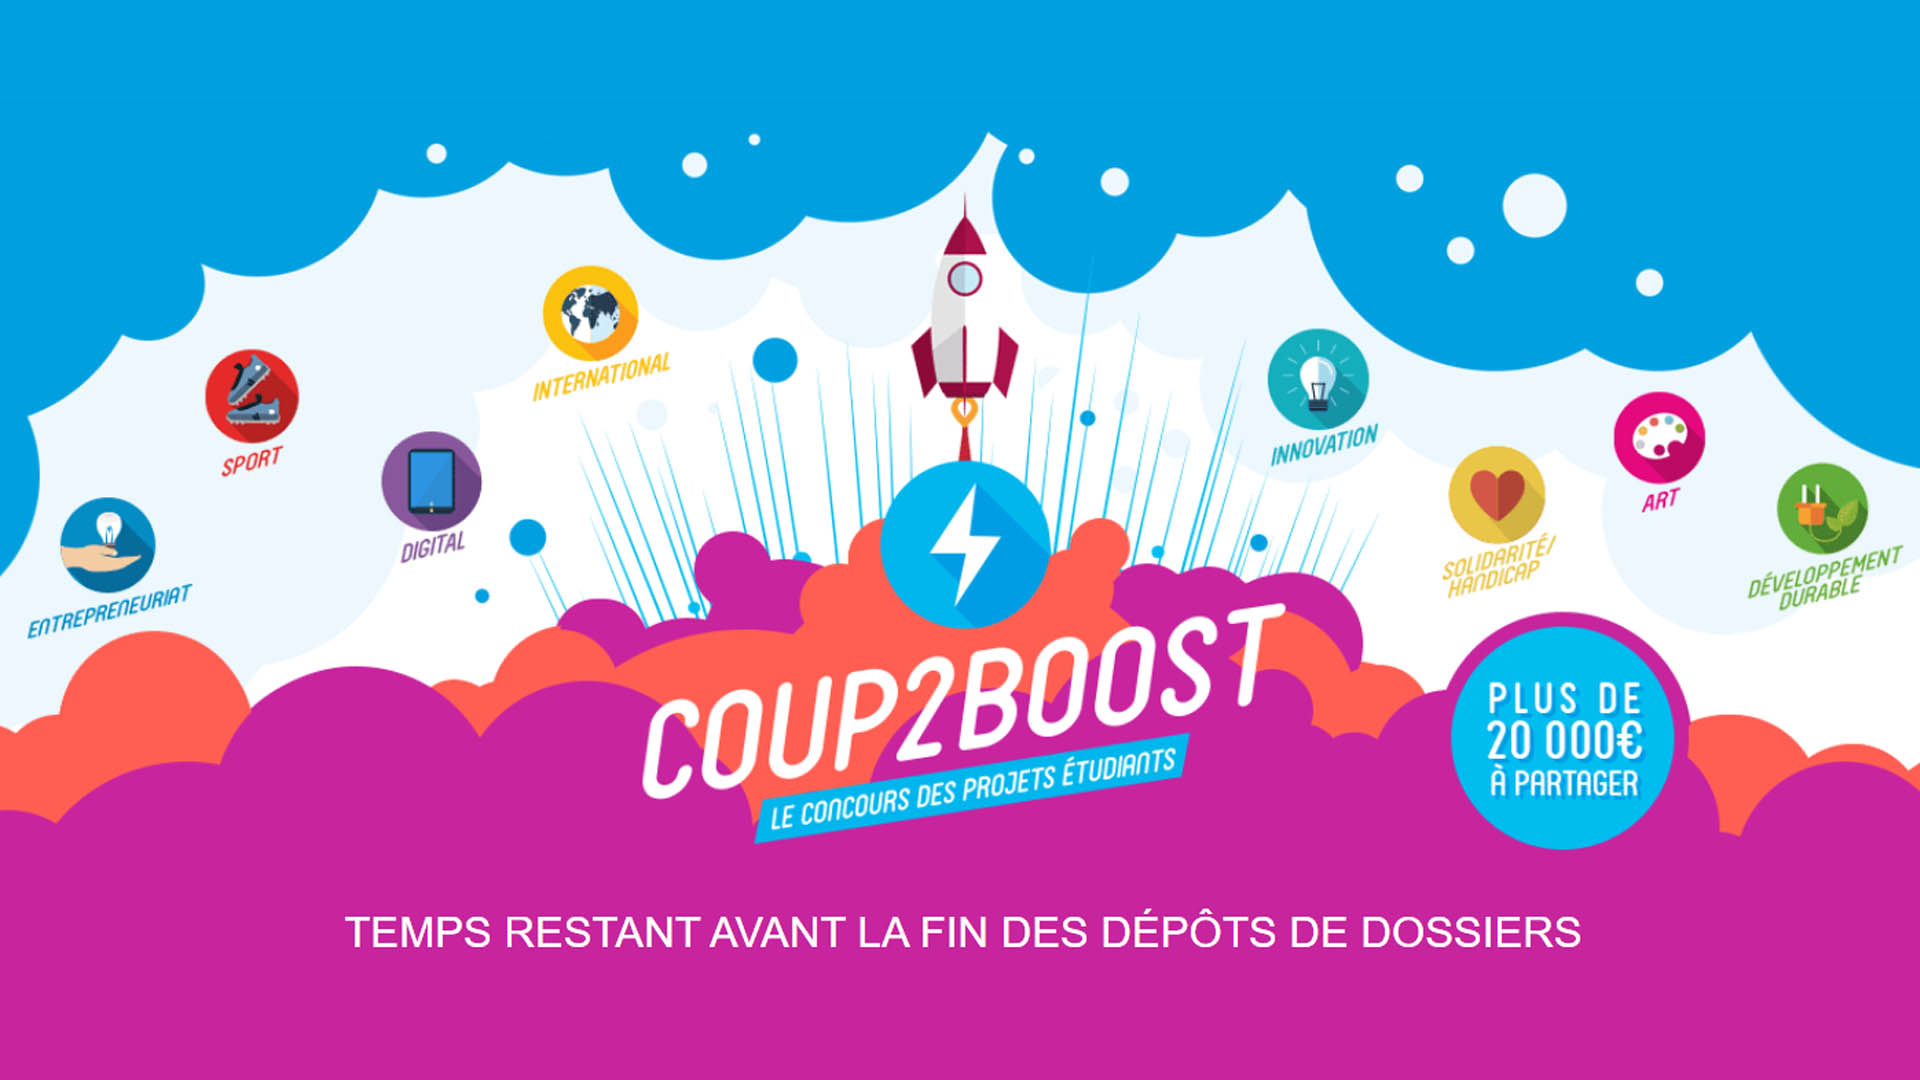 Coup2Boost: Obtain financial support for your business project